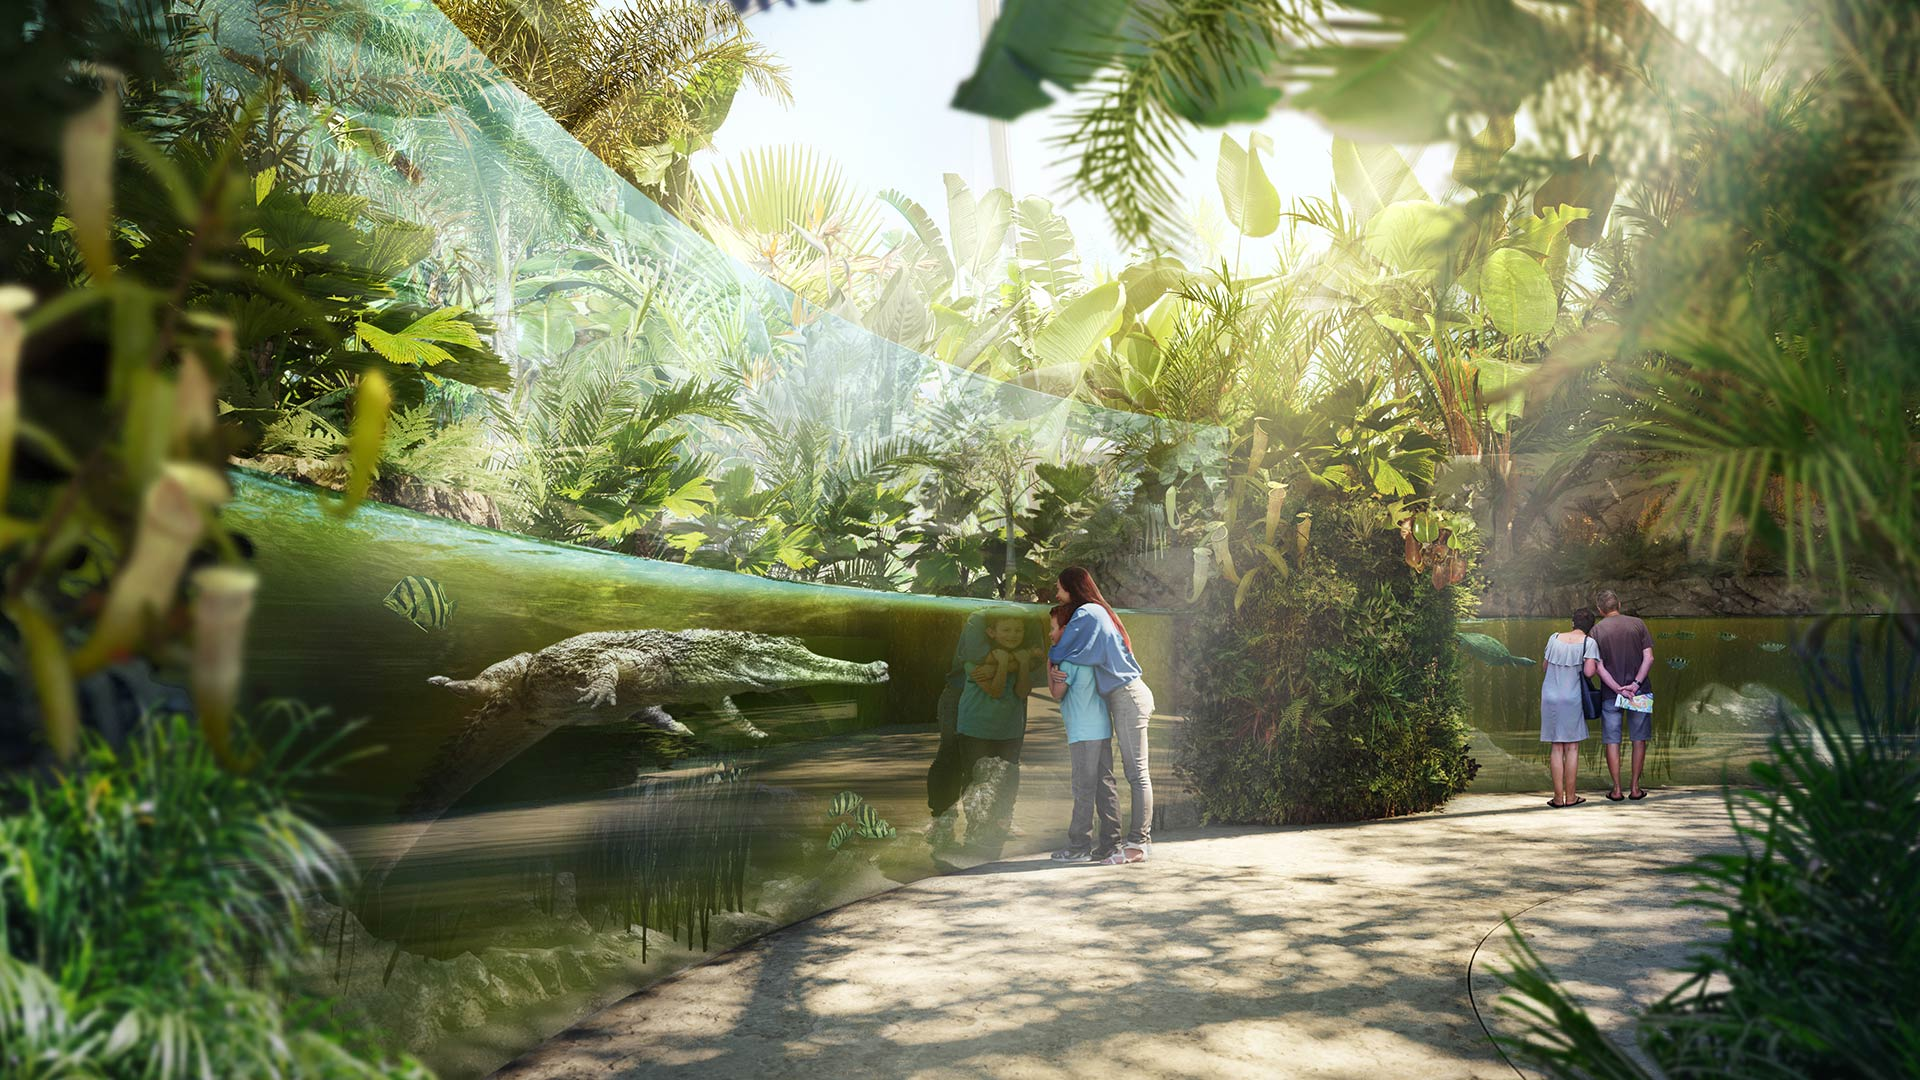 https://rfacdn.nz/zoo/assets/media/artist-impression-sea-dome-interior-gallery.jpg